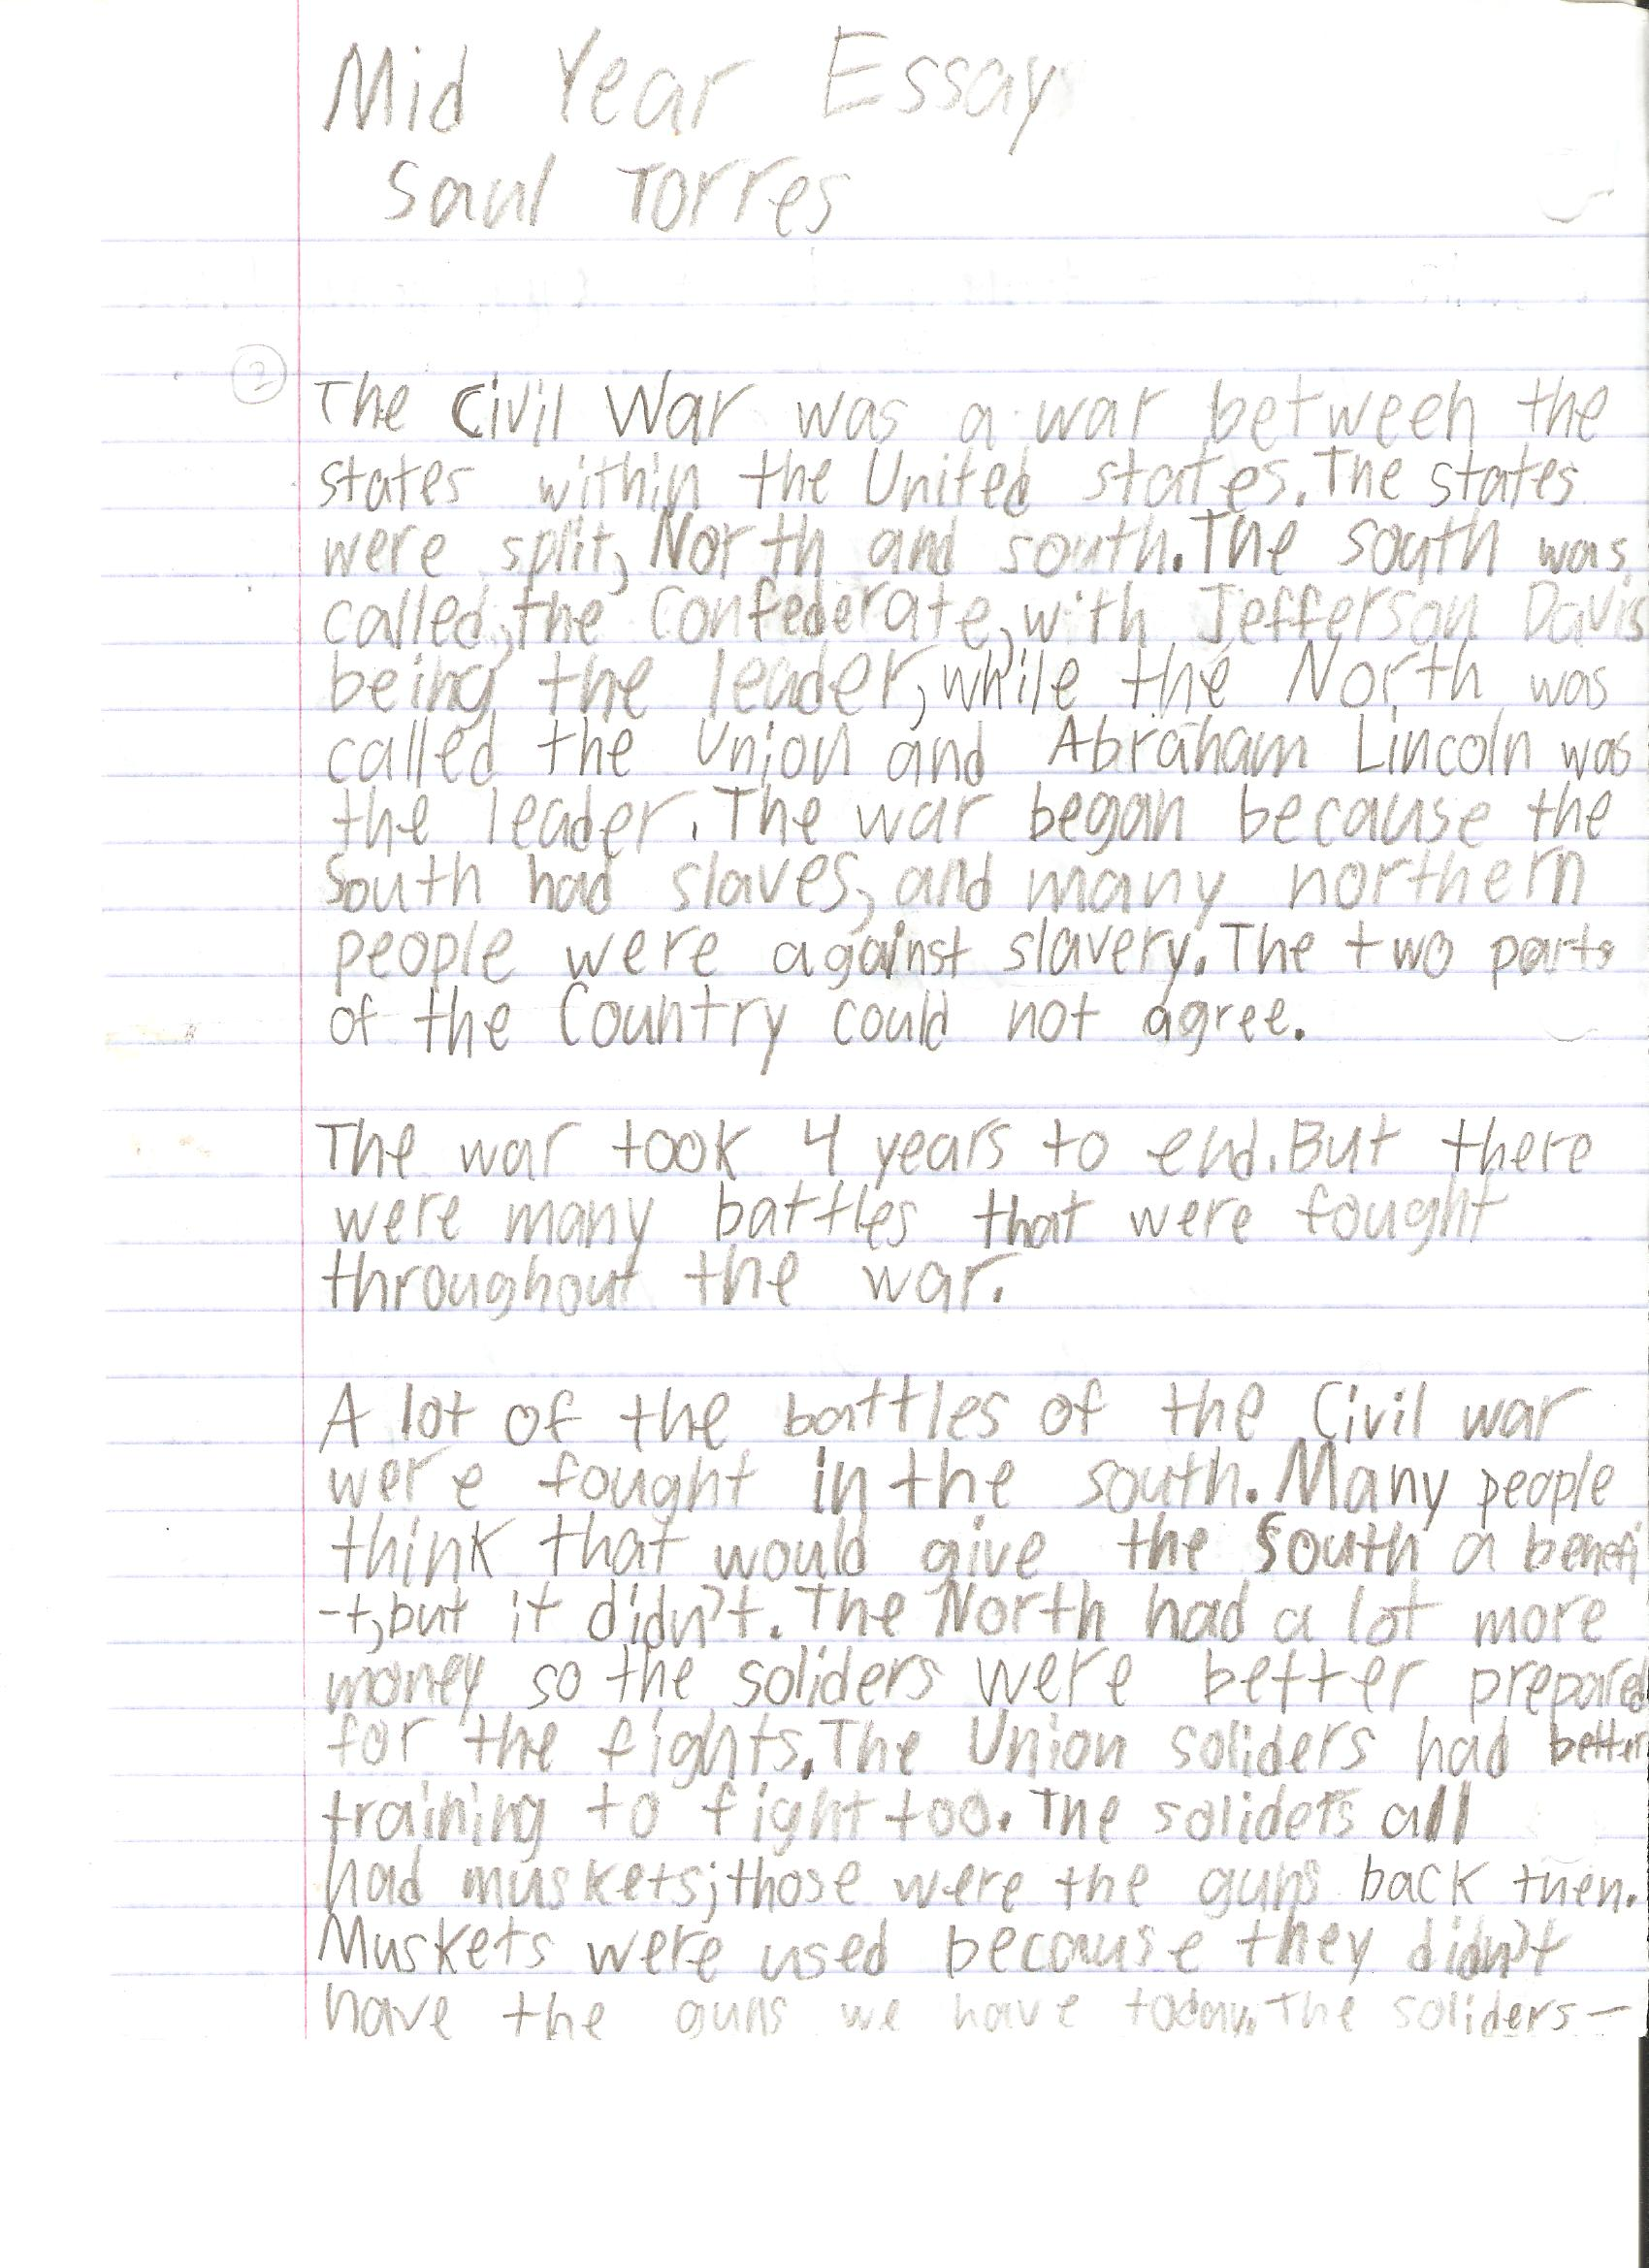 006 Saul Torres Essay Example 6th Grade Fantastic Examples Narrative Writing Literary Full